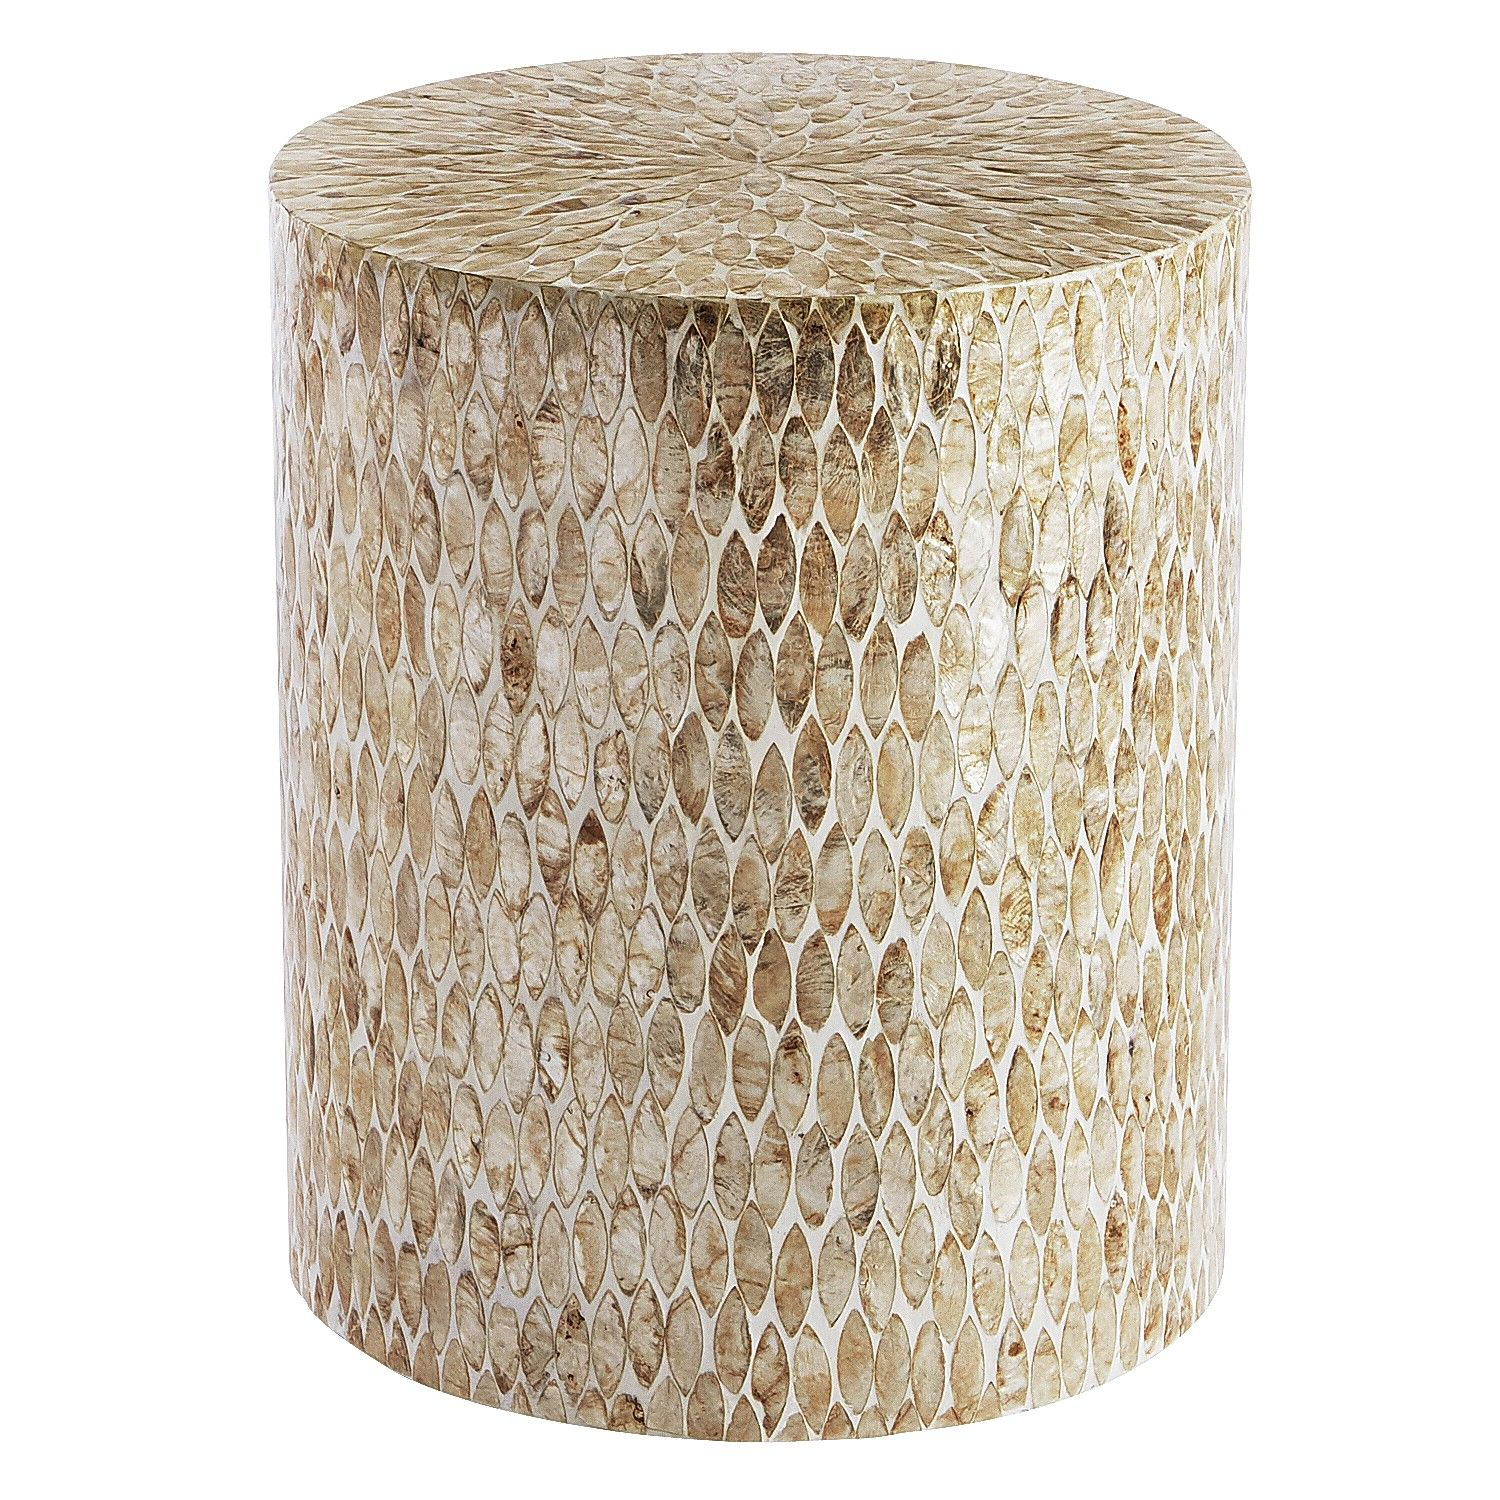 capiz round drum accent table pier imports marble frog tables gold designer placemats and napkins bronze side pine nest with barn door antique furniture ikea storage fitted covers